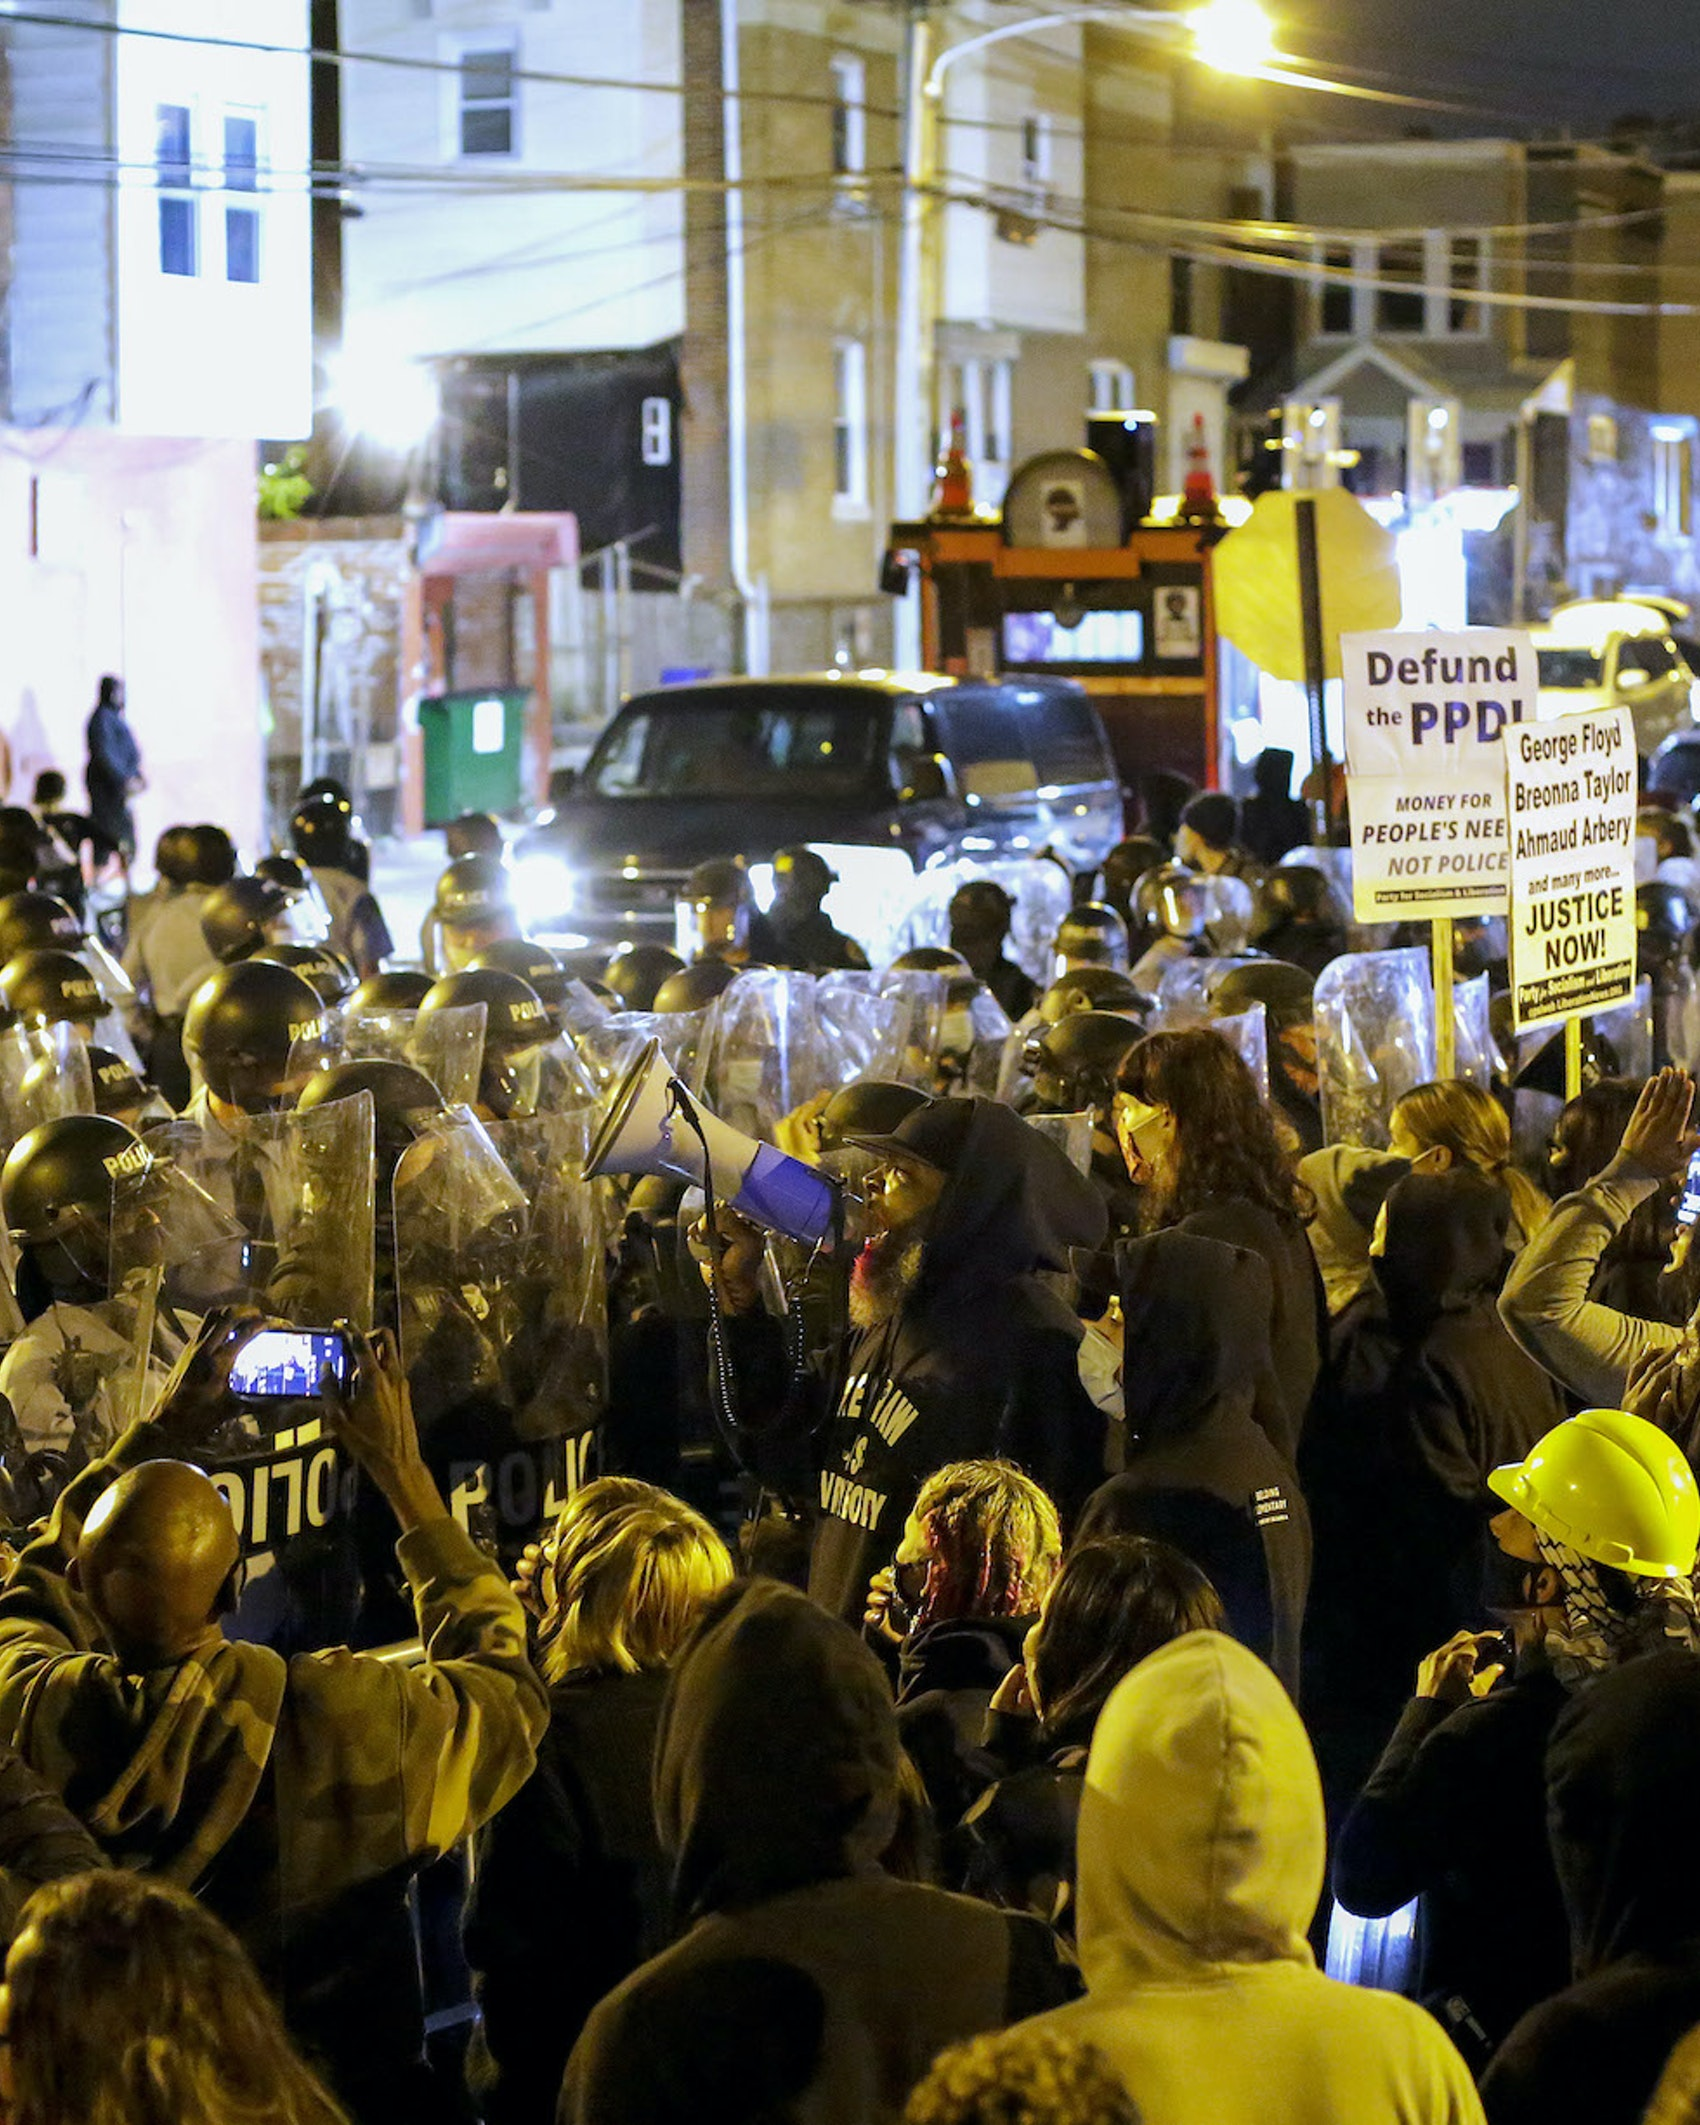 Demonstrators protest the fatal police shooting of Walter Wallace Jr. on October 27, 2020 in Philadelphia, Pennsylvania. Wallace Jr. was fatally shot by two Philadelphia police officers after refusing to drop a knife he was holding. (Photo by Joshua Lott/The Washington Post via Getty Images)